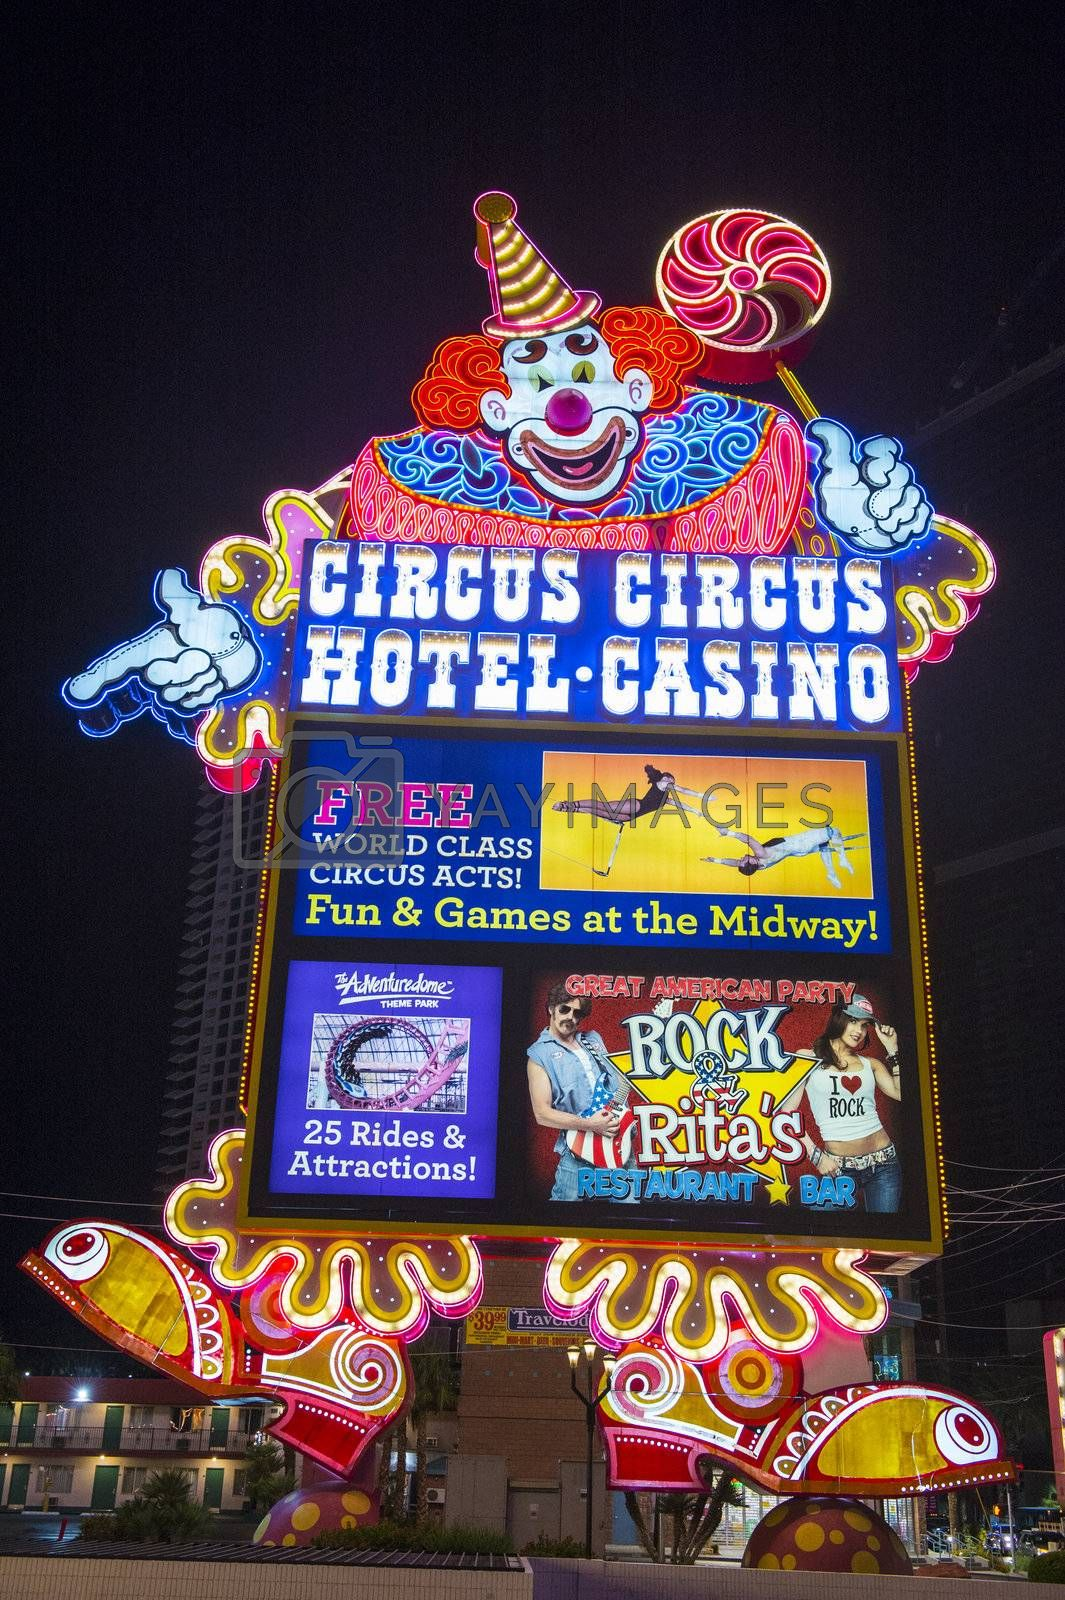 LAS VEGAS - NOVEMBER 08: The Circus Circus hotel and casino sign on November 08, 2012 in Las Vegas. Las Vegas in 2012 is projected to break the all-time visitor volume record of 39-plus million visitors